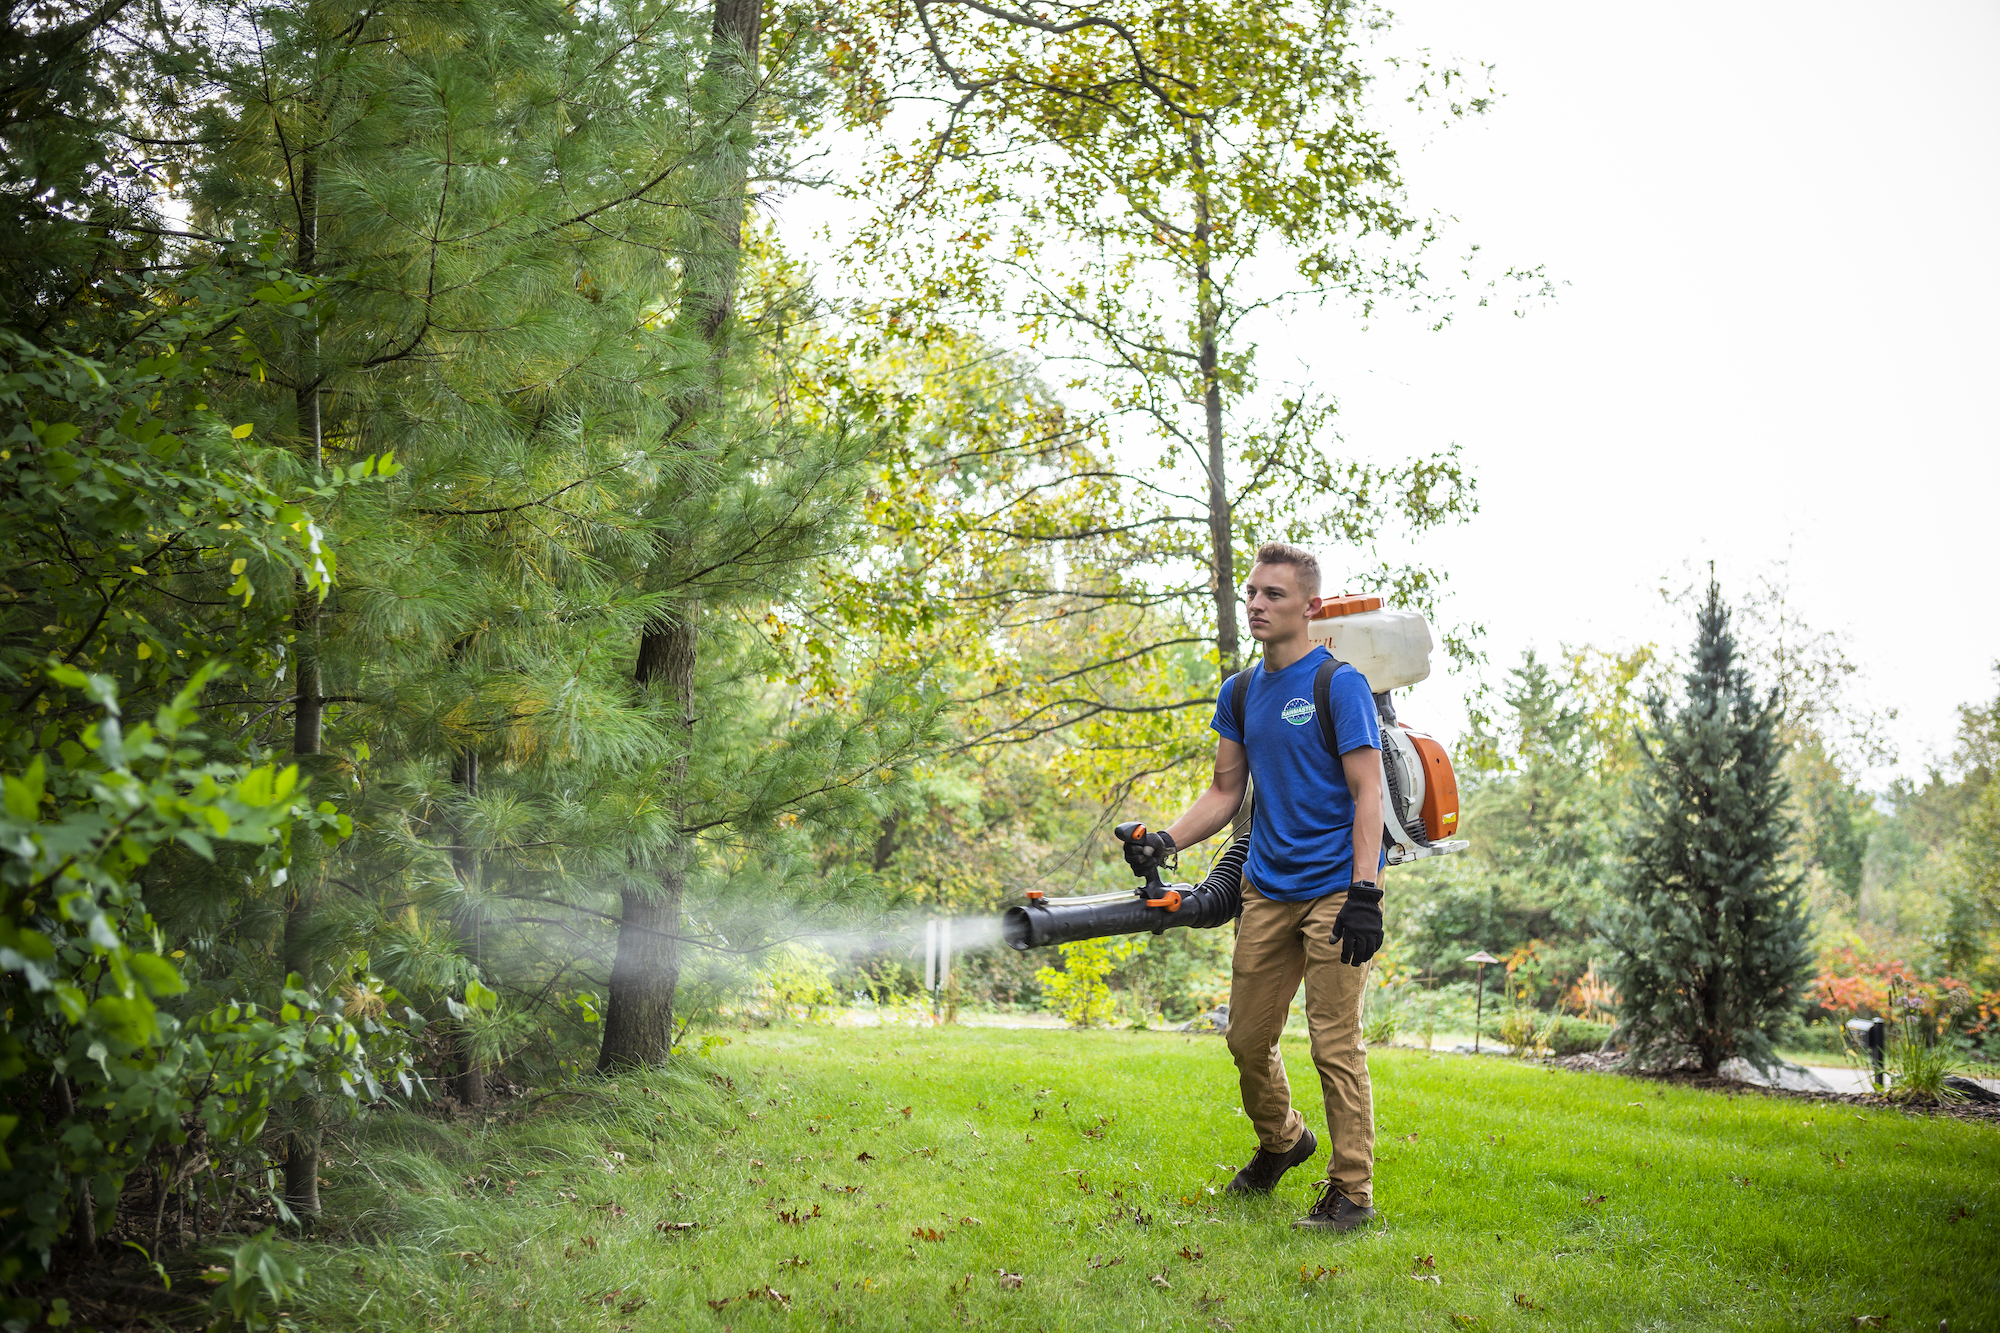 Mosquito control technician spraying residential property in Eau Claire, WI